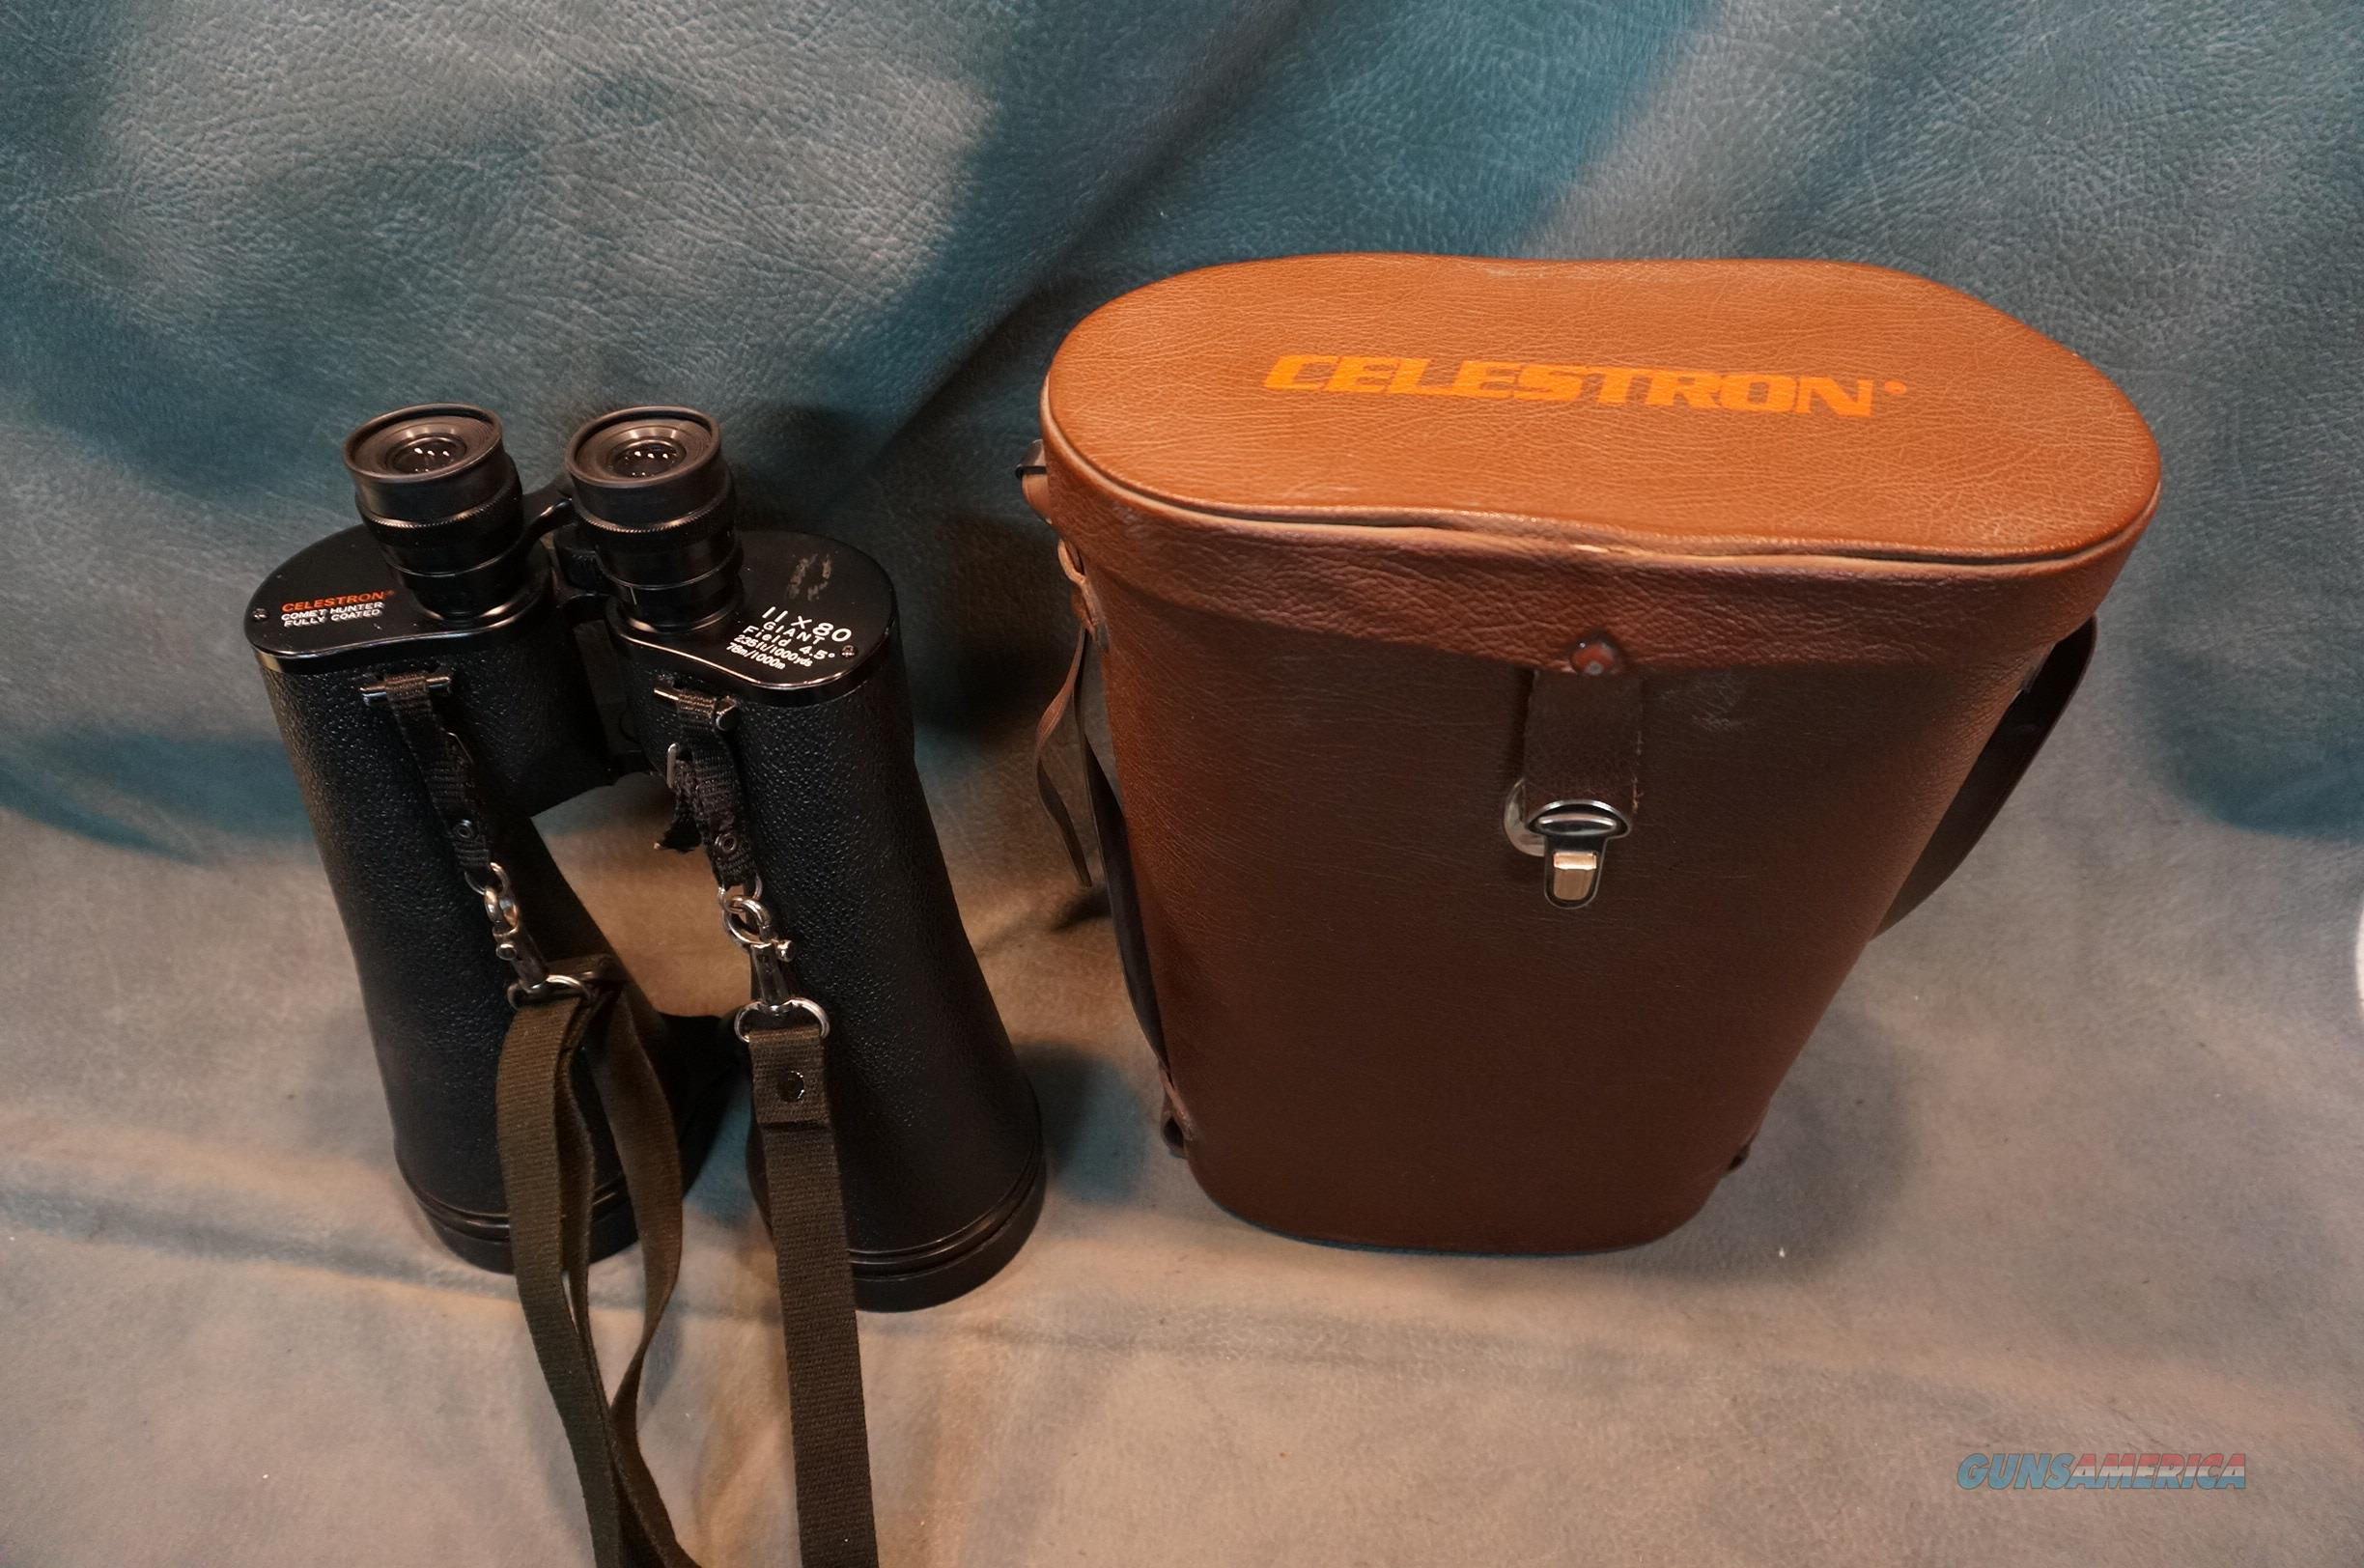 Celestron 11x80 Giant binoculars  Non-Guns > Scopes/Mounts/Rings & Optics > Non-Scope Optics > Binoculars